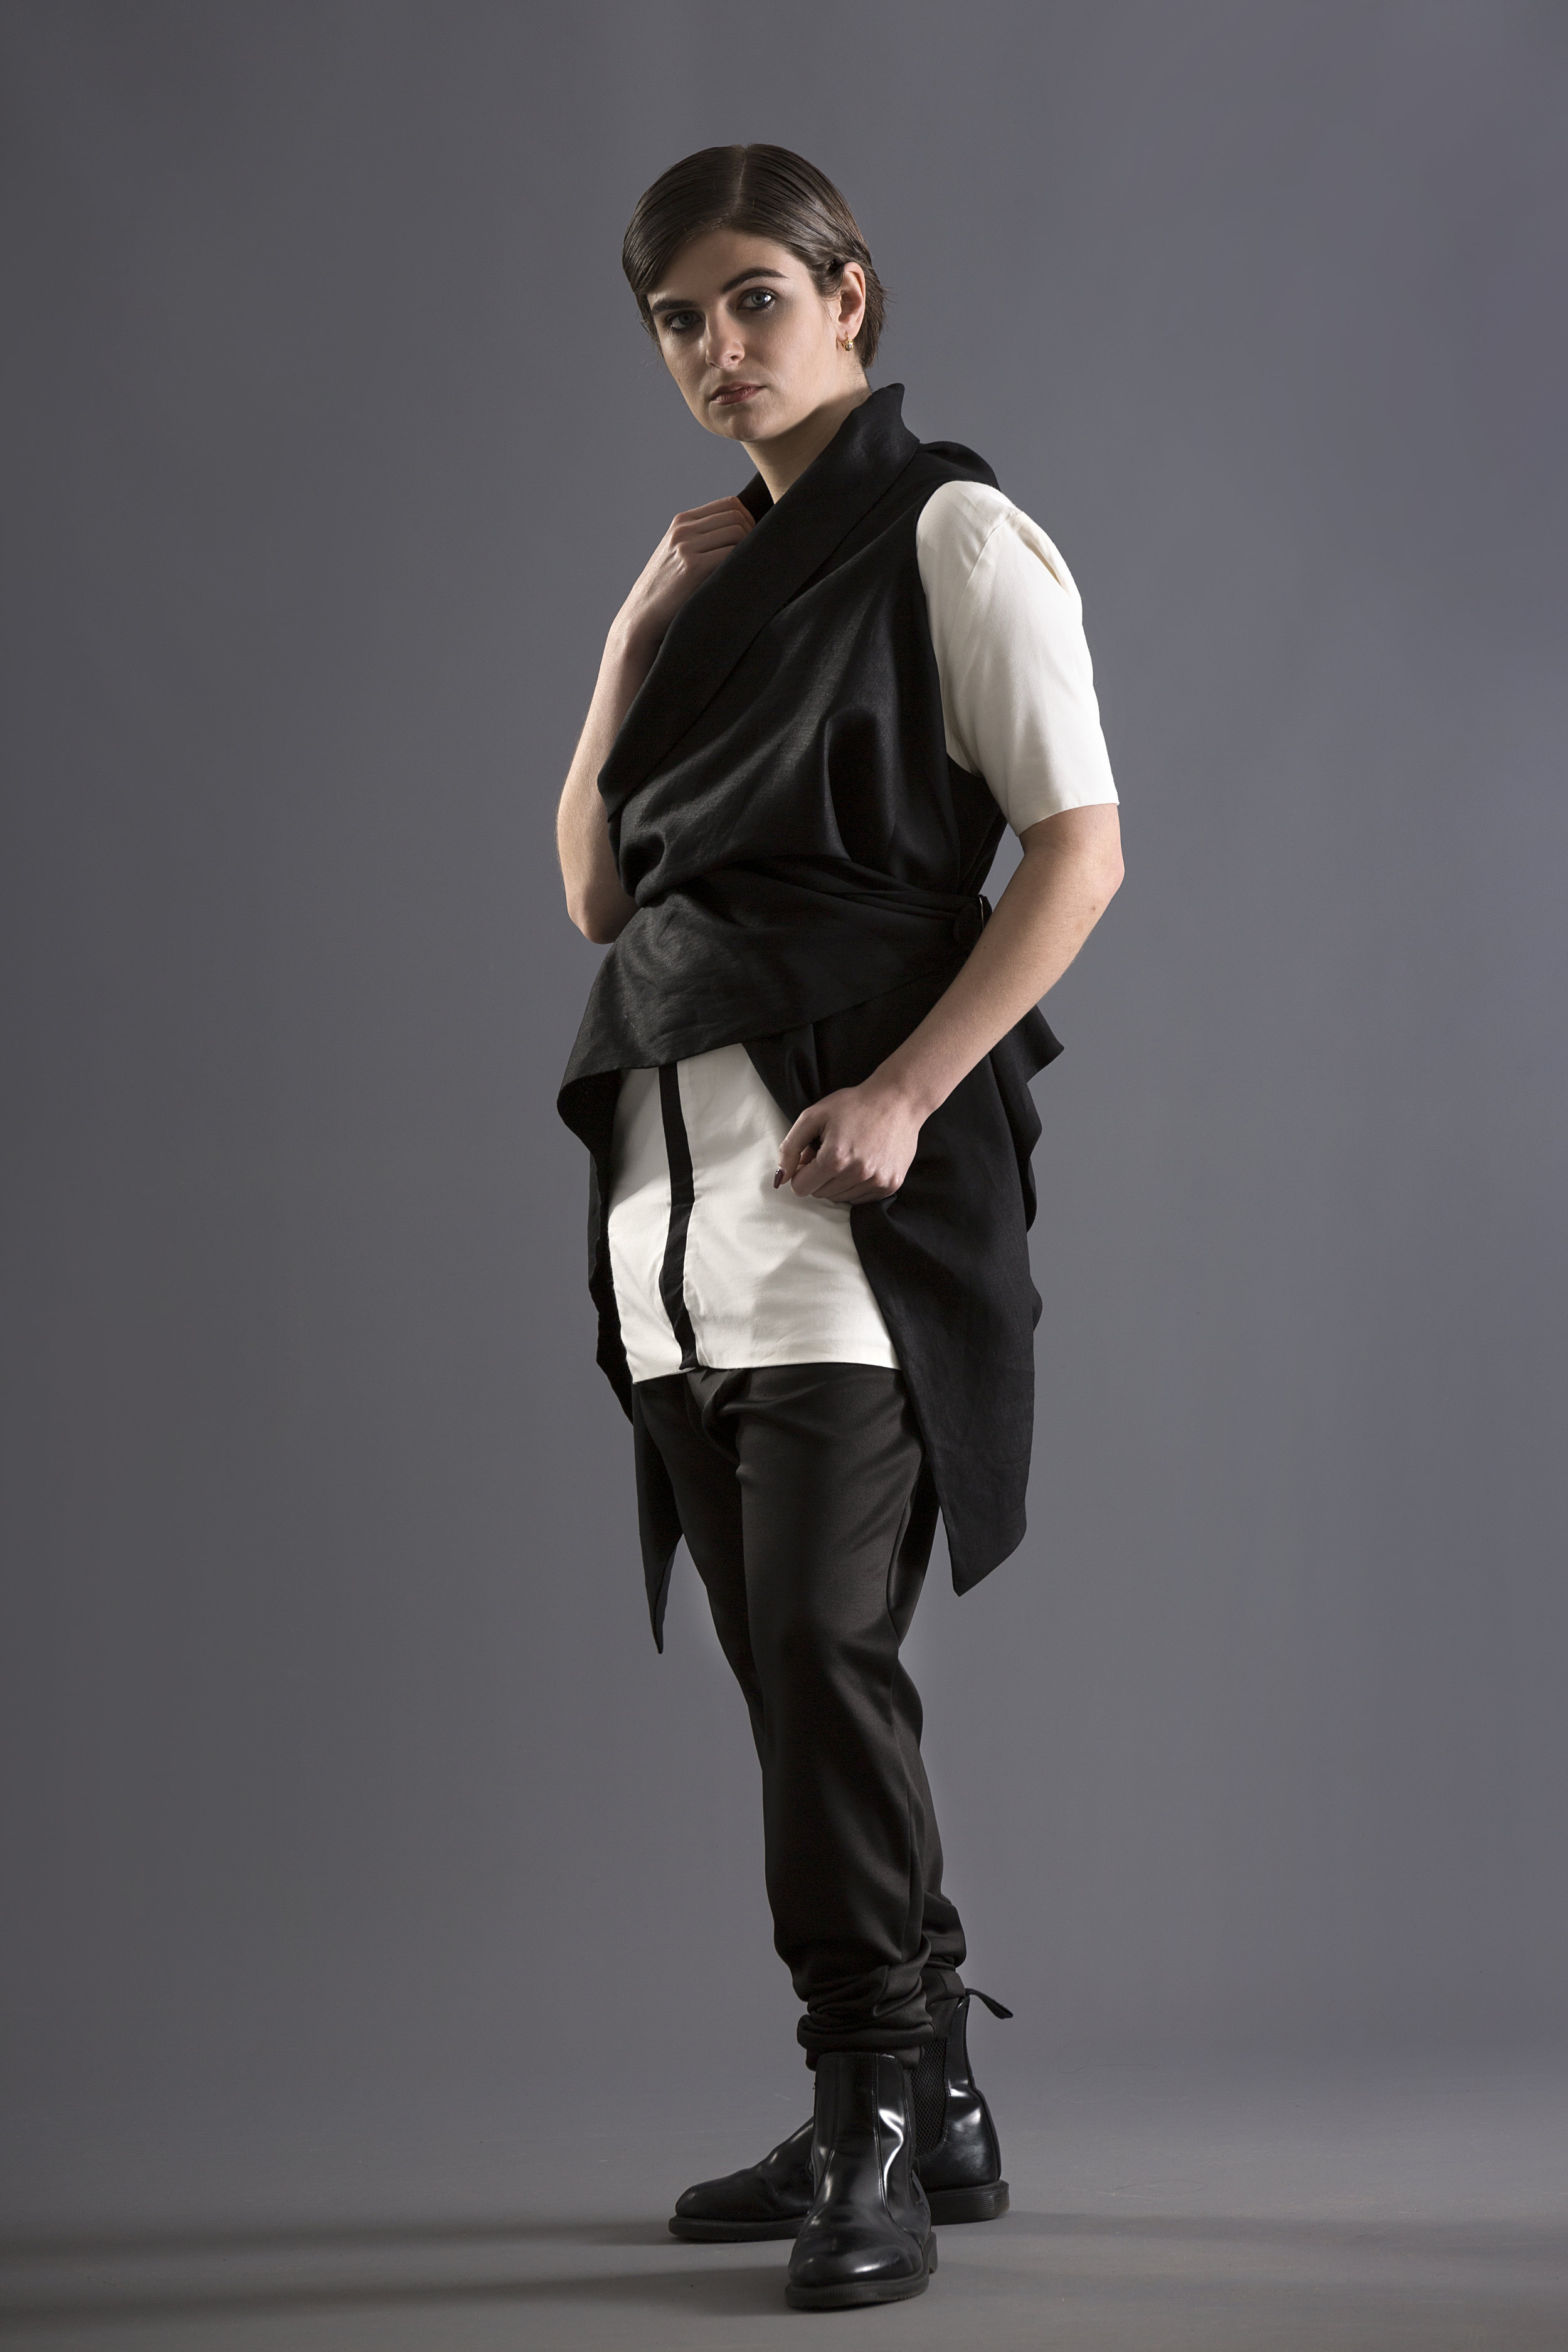 zaramia-ava-zaramiaava-leeds-fashion-designer-ethical-sustainable-black-jacket-drape-layers-dress-linen-unisex-genderless-abbeyhousemuseam-heshethey-top-bamboo-3.jpg